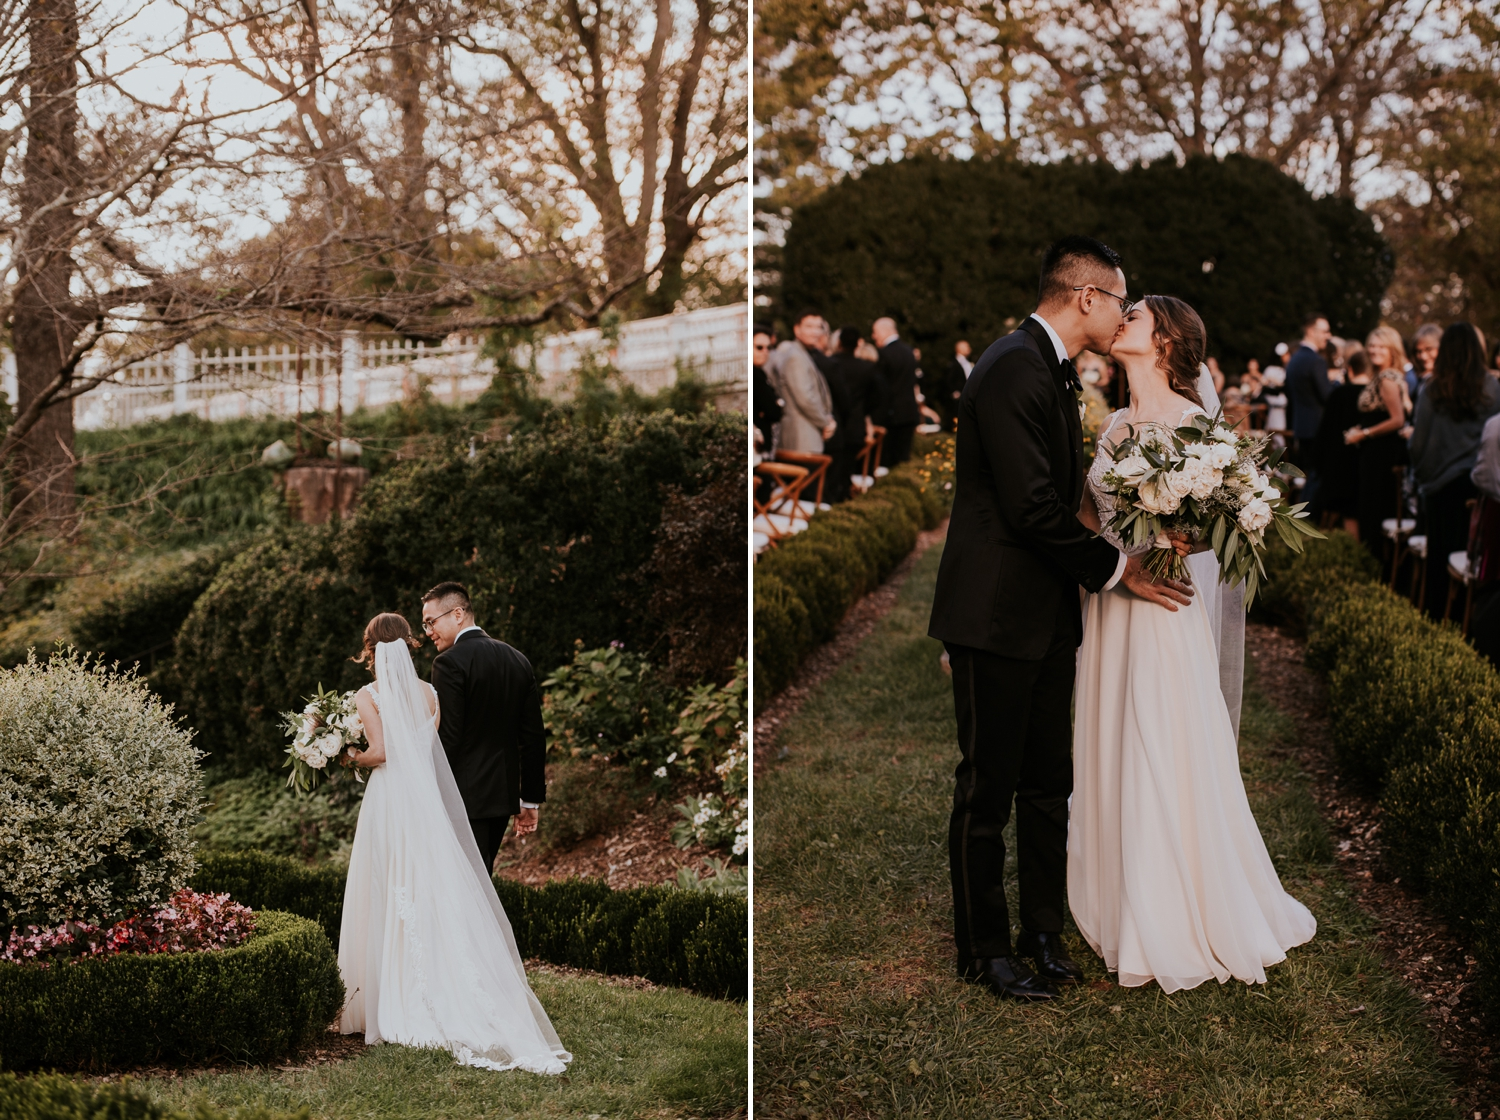 leesburg-virginia-oatlands-historic-house-wedding-photographer-planner-vendors 37.jpg